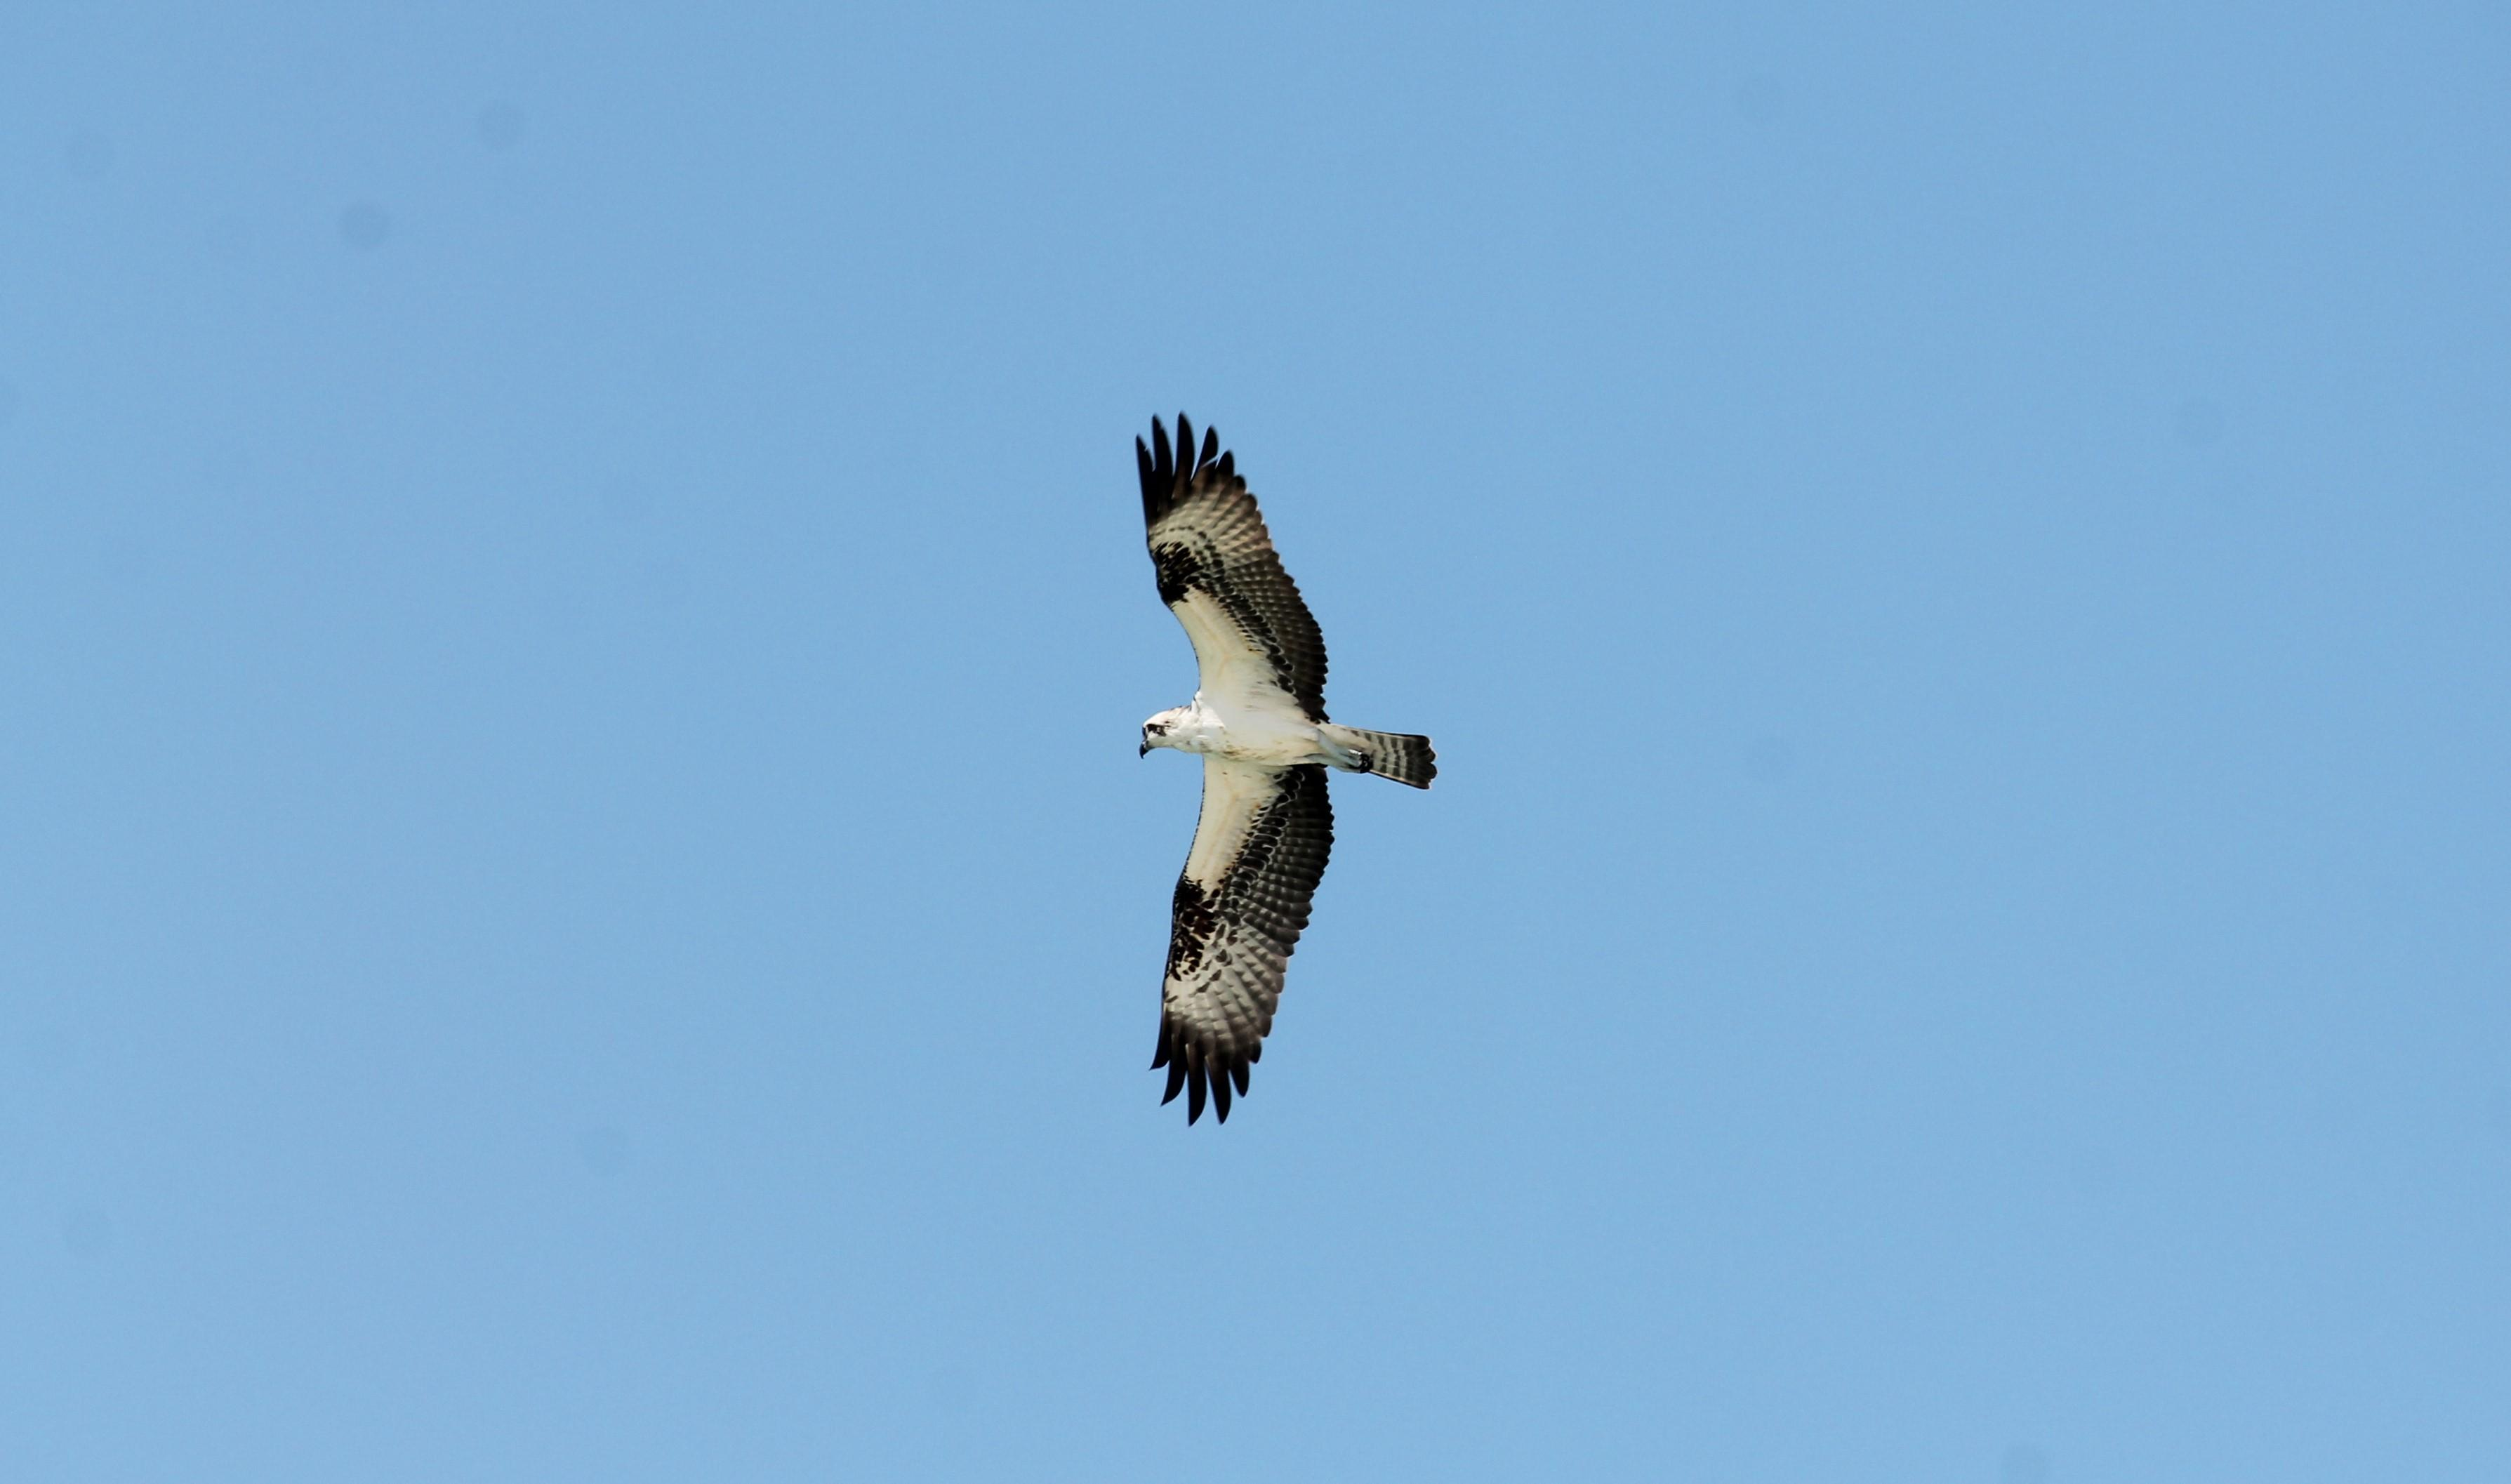 Osprey Soars Through the Sky